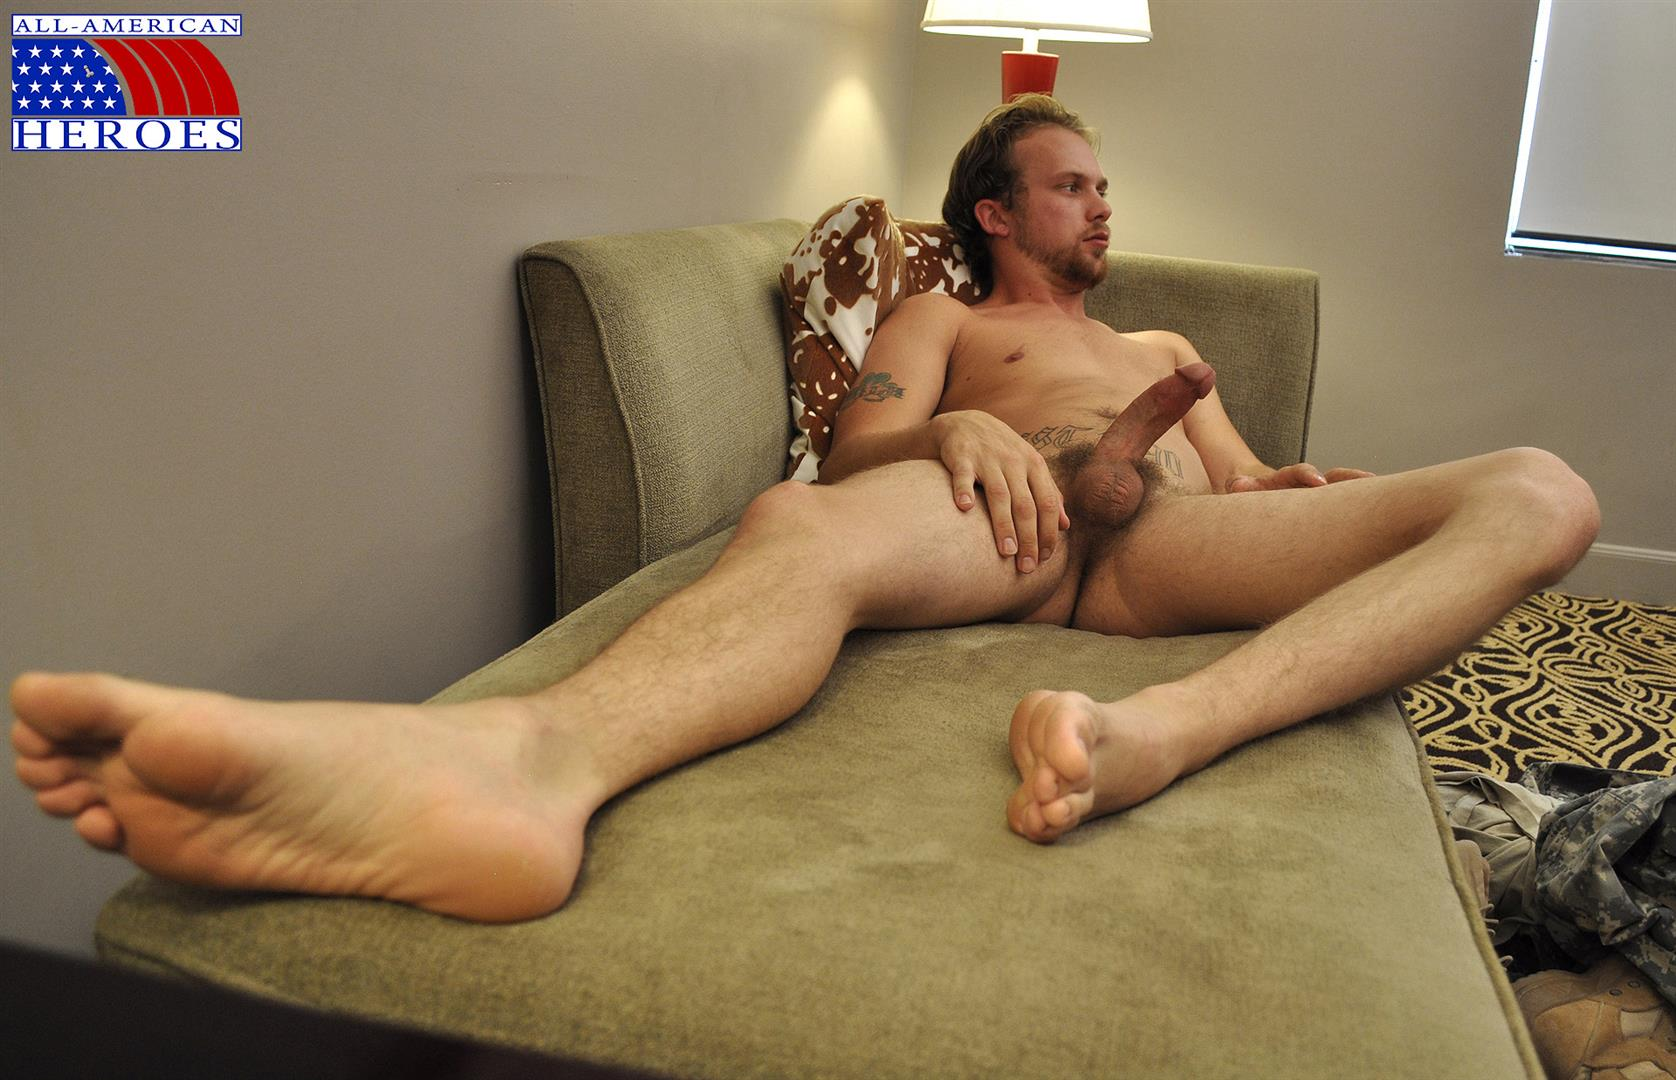 All-American-Heroes-US-Army-Specialist-Clark-Jerking-His-Big-Hairy-Cock-Amateur-Gay-Porn-12 US Army Specialist Masturbating His Hairy Curved Cock